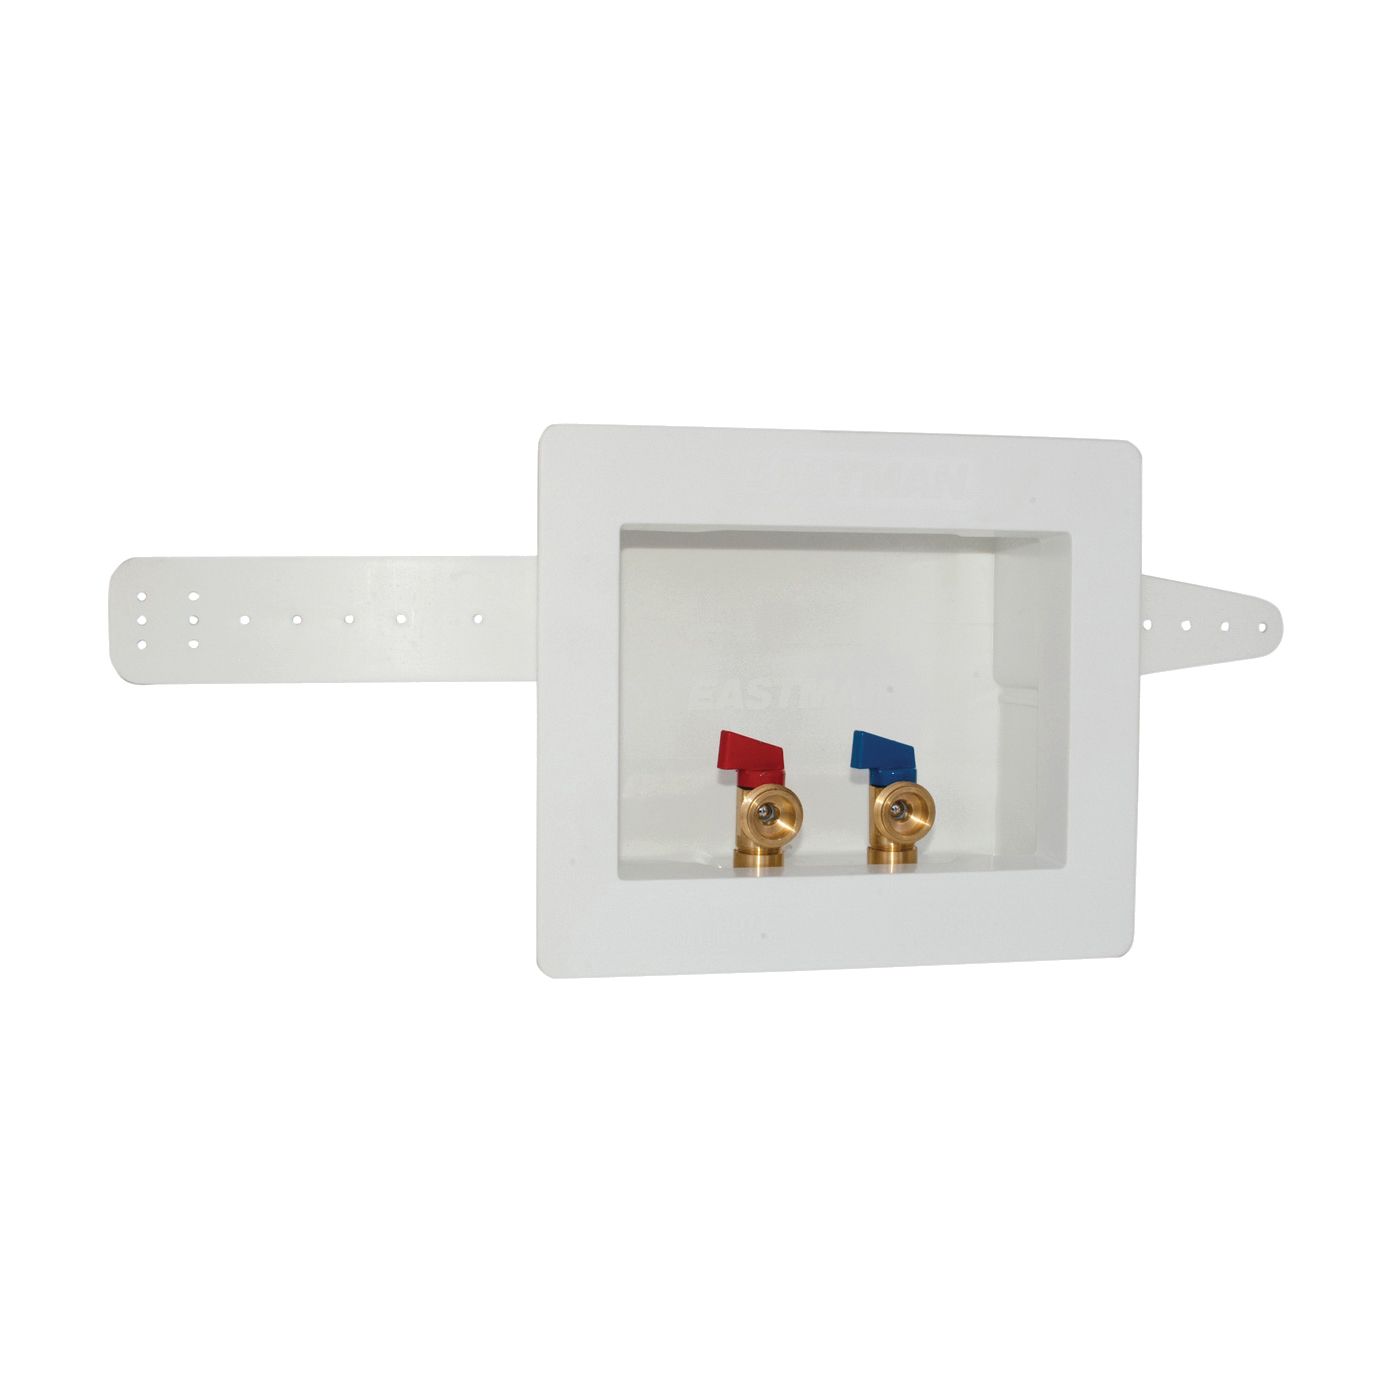 Picture of EASTMAN 60244/38937 Washing Machine Outlet Box with Valve, 1/2, 3/4 in Connection, Brass/Polystyrene